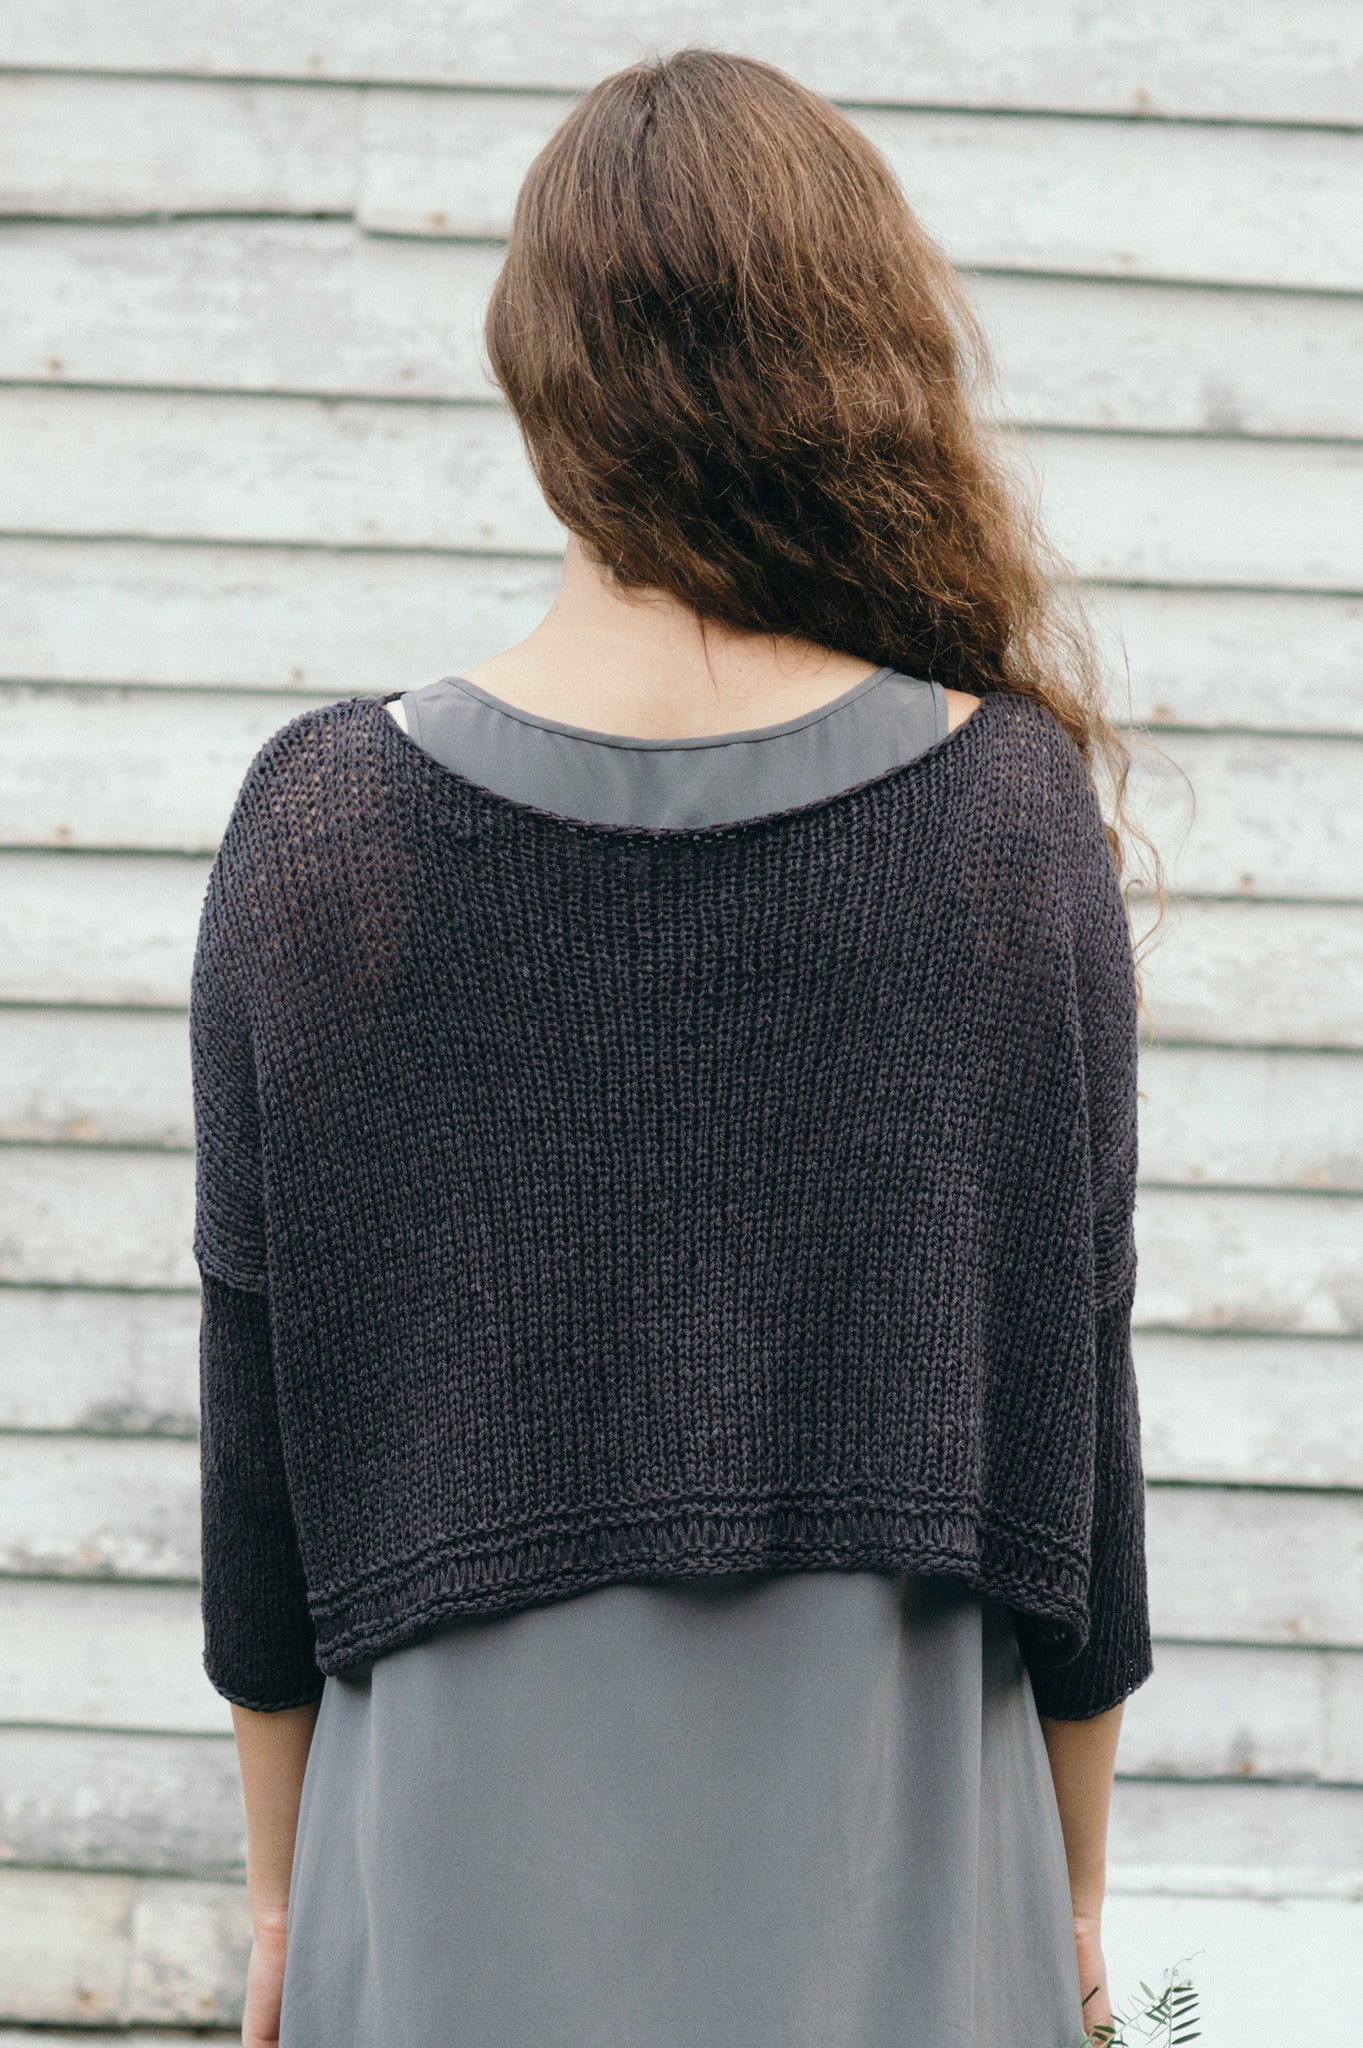 deschain pullover knitting pattern - Quince and Co